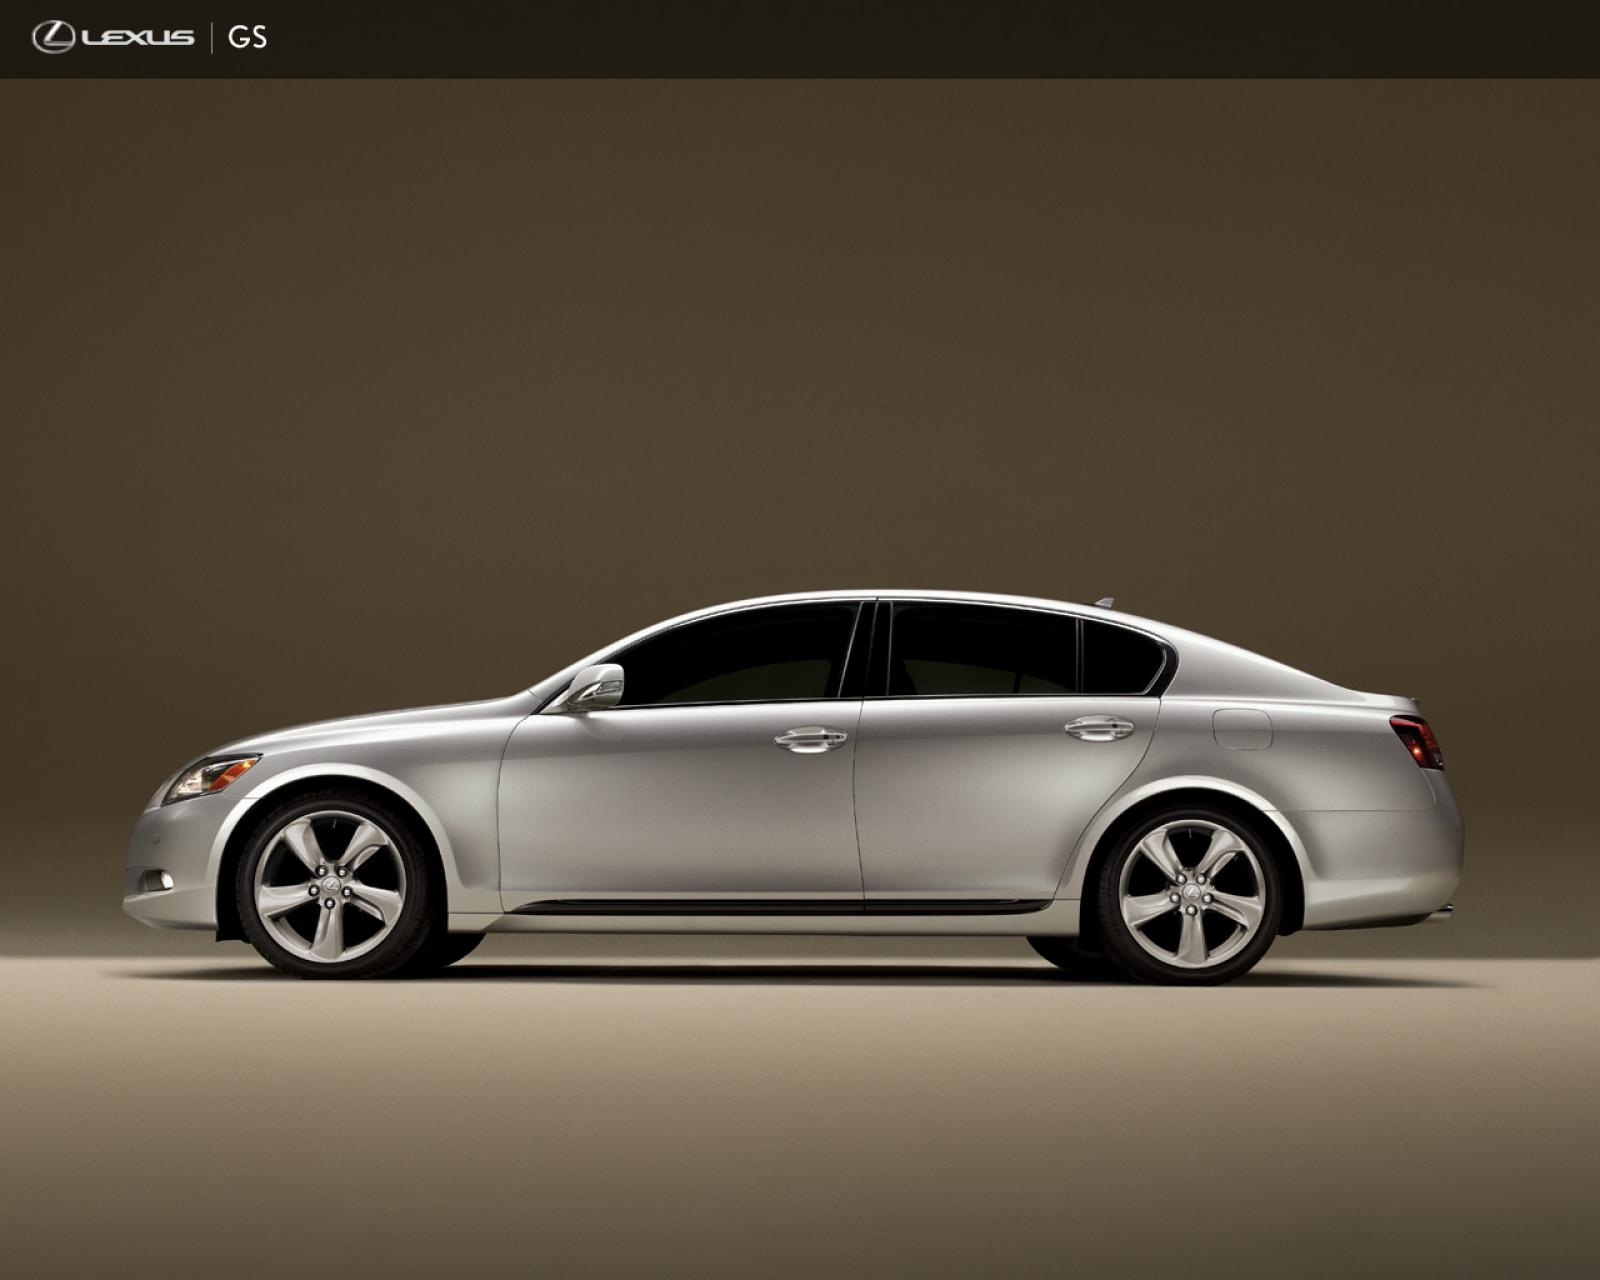 2008 lexus gs 350 information and photos zombiedrive. Black Bedroom Furniture Sets. Home Design Ideas